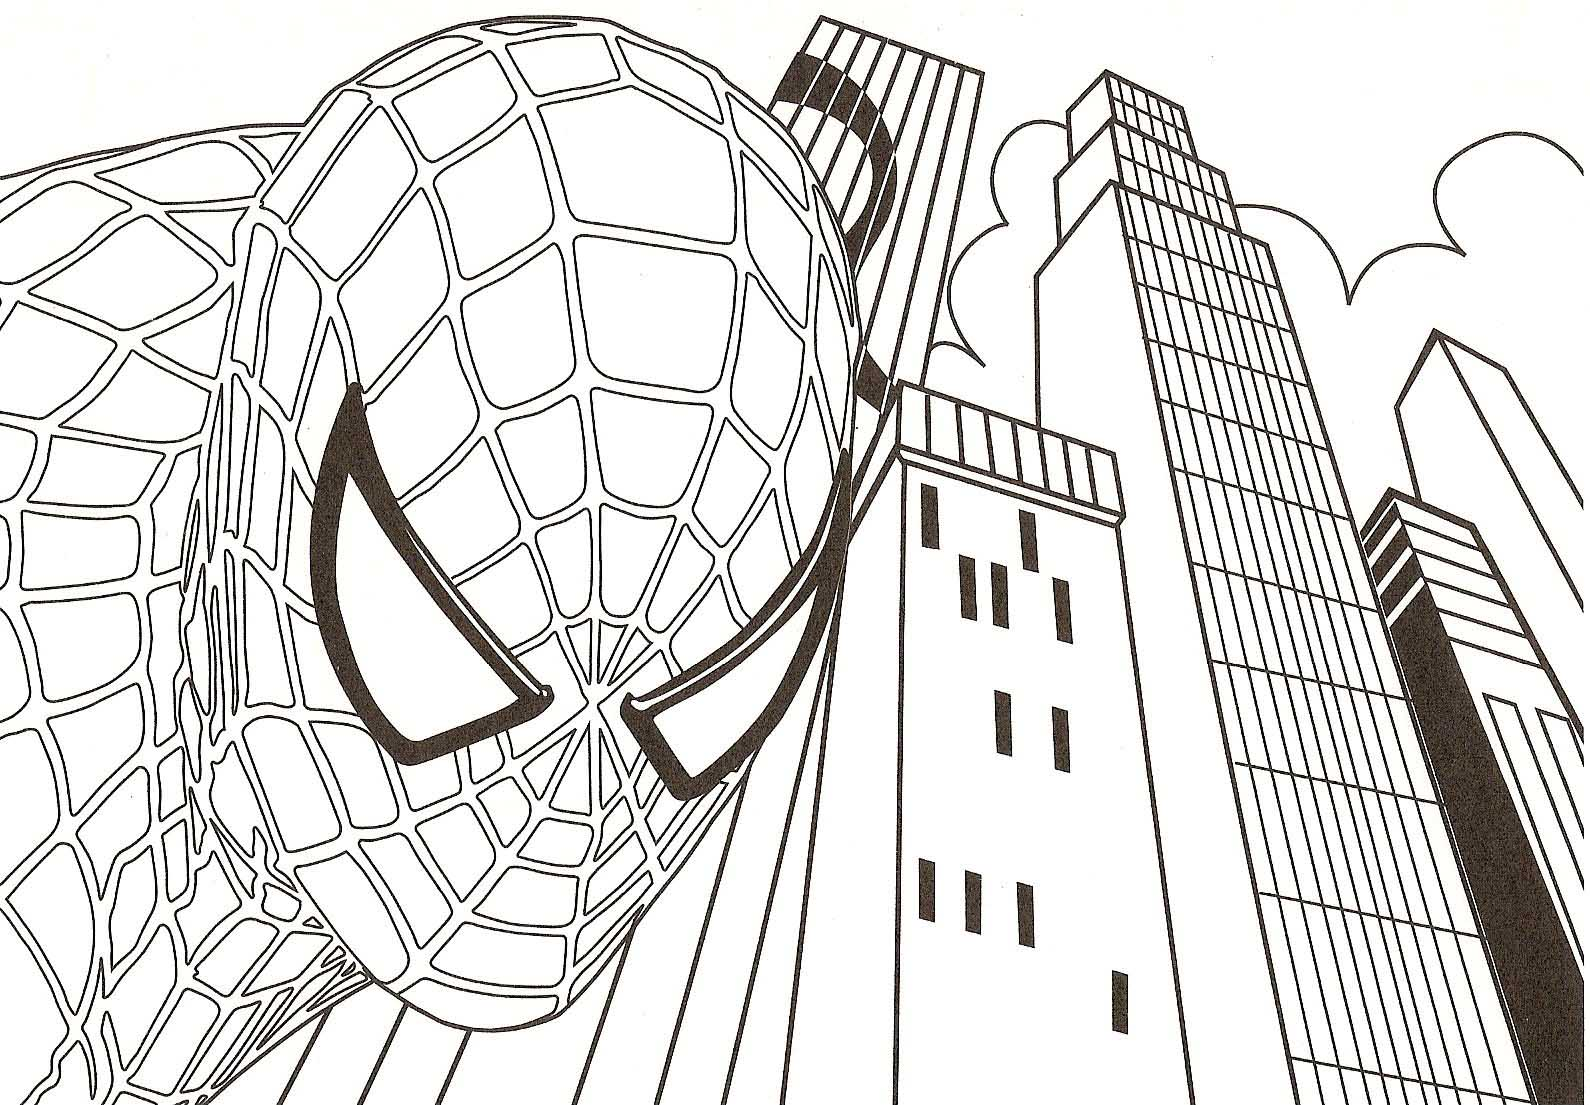 Spiderman Coloring Pages In City